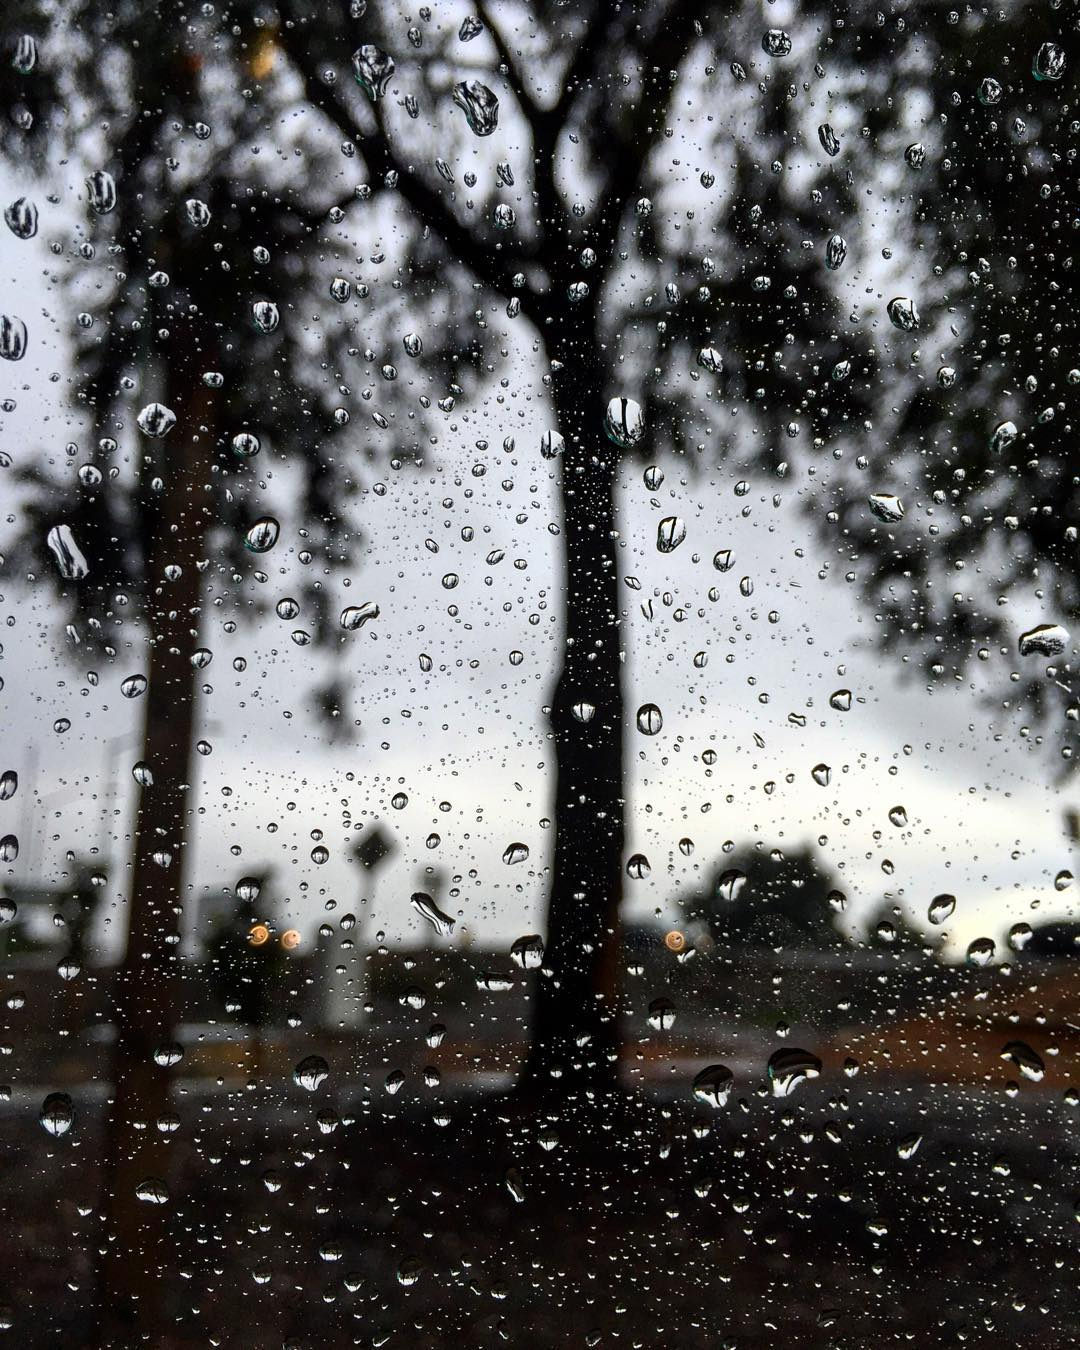 """<div class=""""meta image-caption""""><div class=""""origin-logo origin-image none""""><span>none</span></div><span class=""""caption-text"""">A storm moved through the Bay Area on Monday, November 9, 2015, bringing waves of thunderstorms, lightning and showers. Share your weather pics on social media using #abc7now. (Photo submitted to KGO-TV by btophotography/Instagram)</span></div>"""